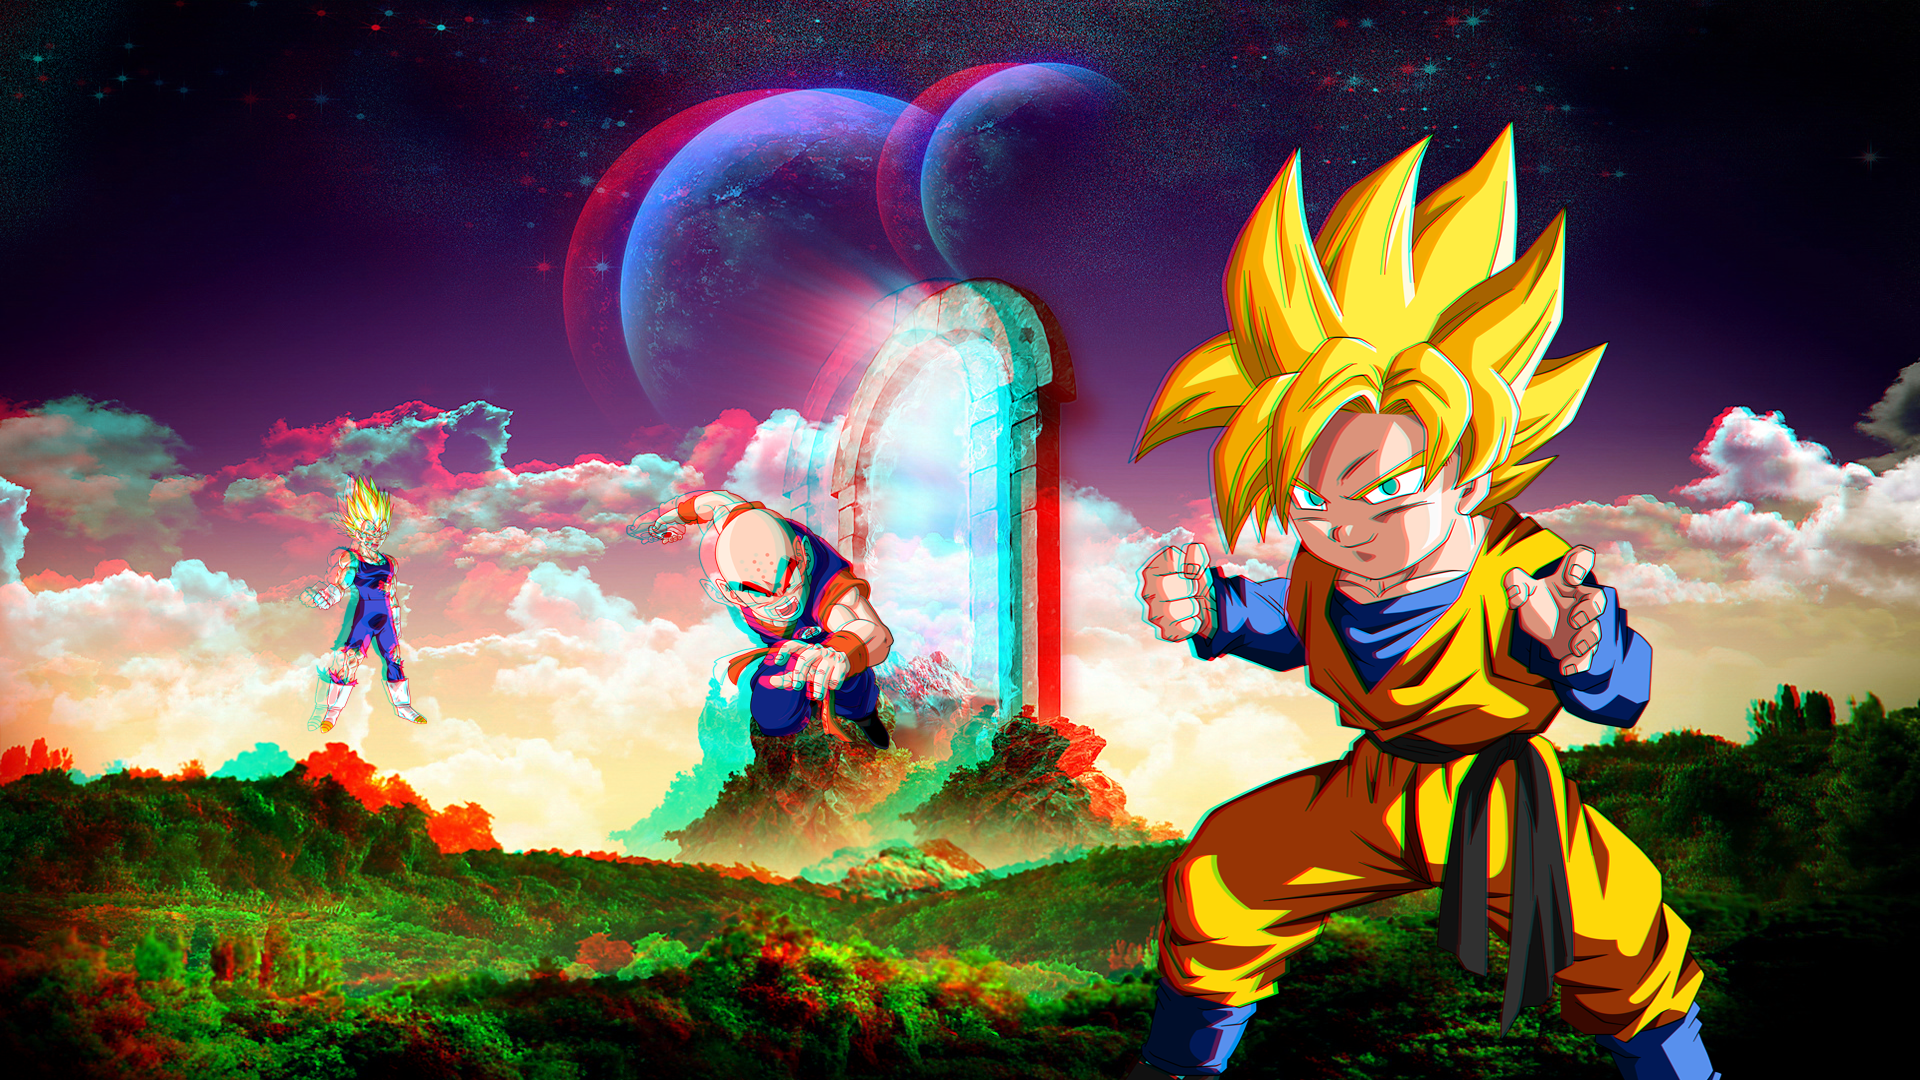 1080p 3d wallpapers hd pixelstalk net - 3d wallpaper of dragon ball z ...